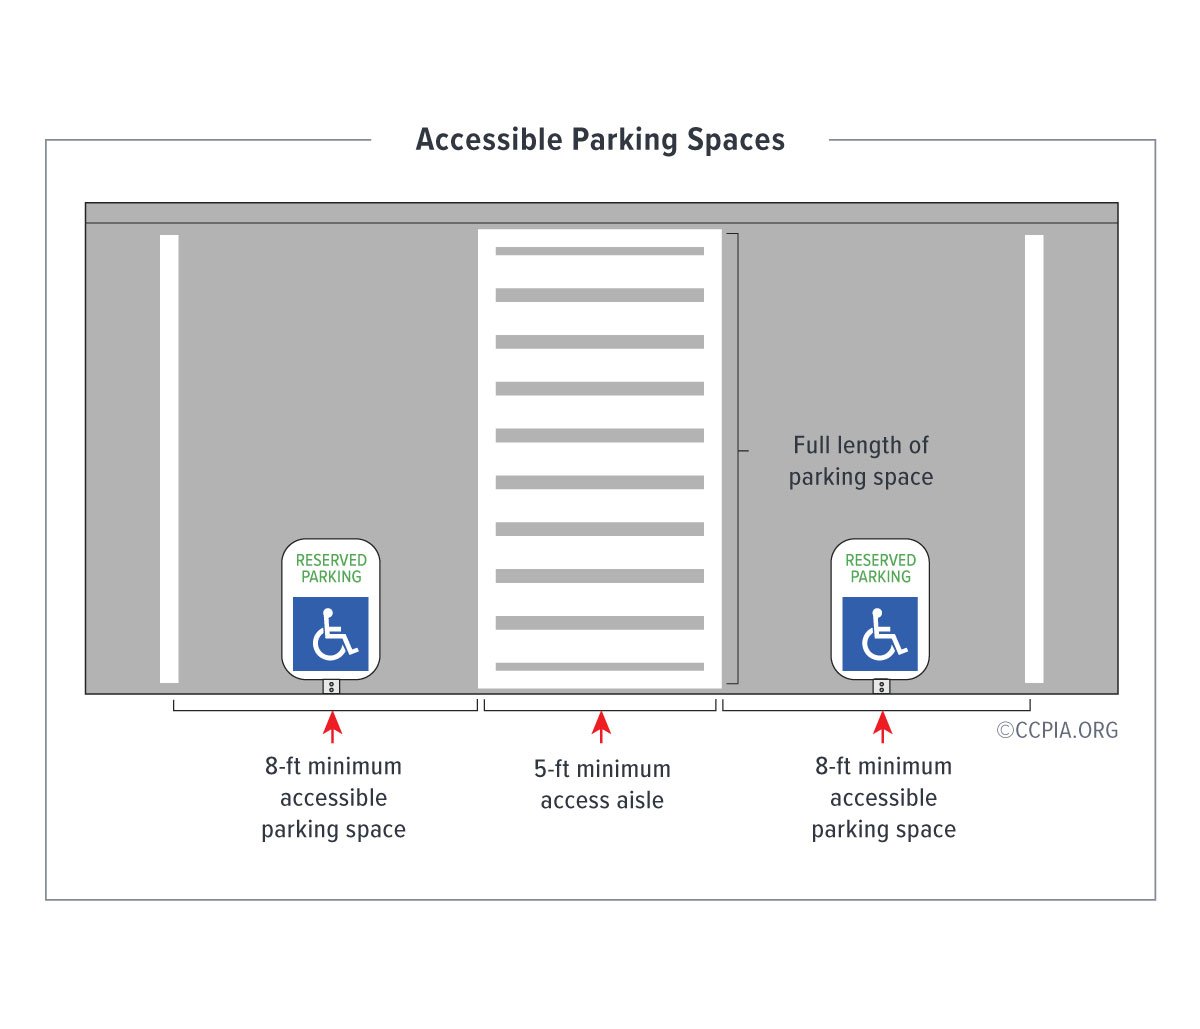 Accessible parking spaces at public accommodations and commercial facilities.